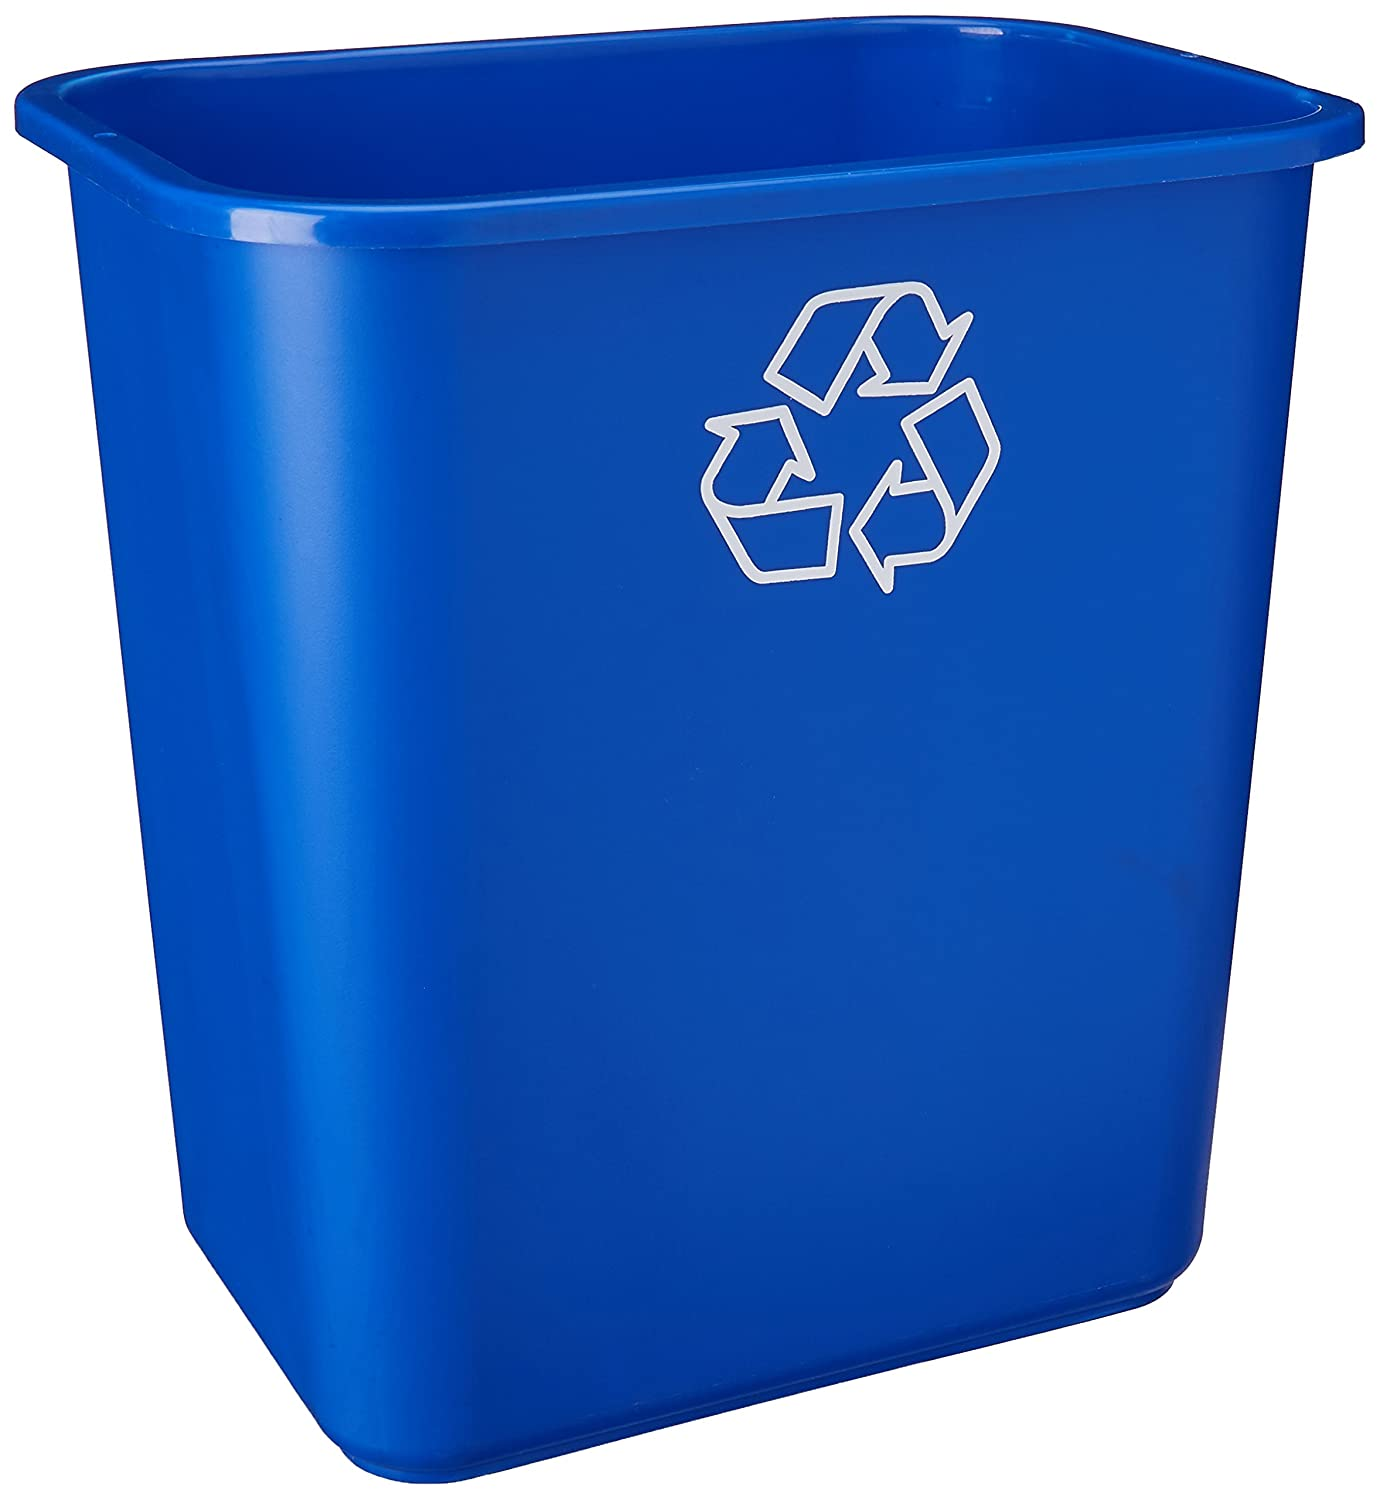 United Solutions Eco Sense Wb0084 Blue Twenty Eight Quart Recycling Wastebasket   28 Qt Recycling Bin In Blue by United Solutions